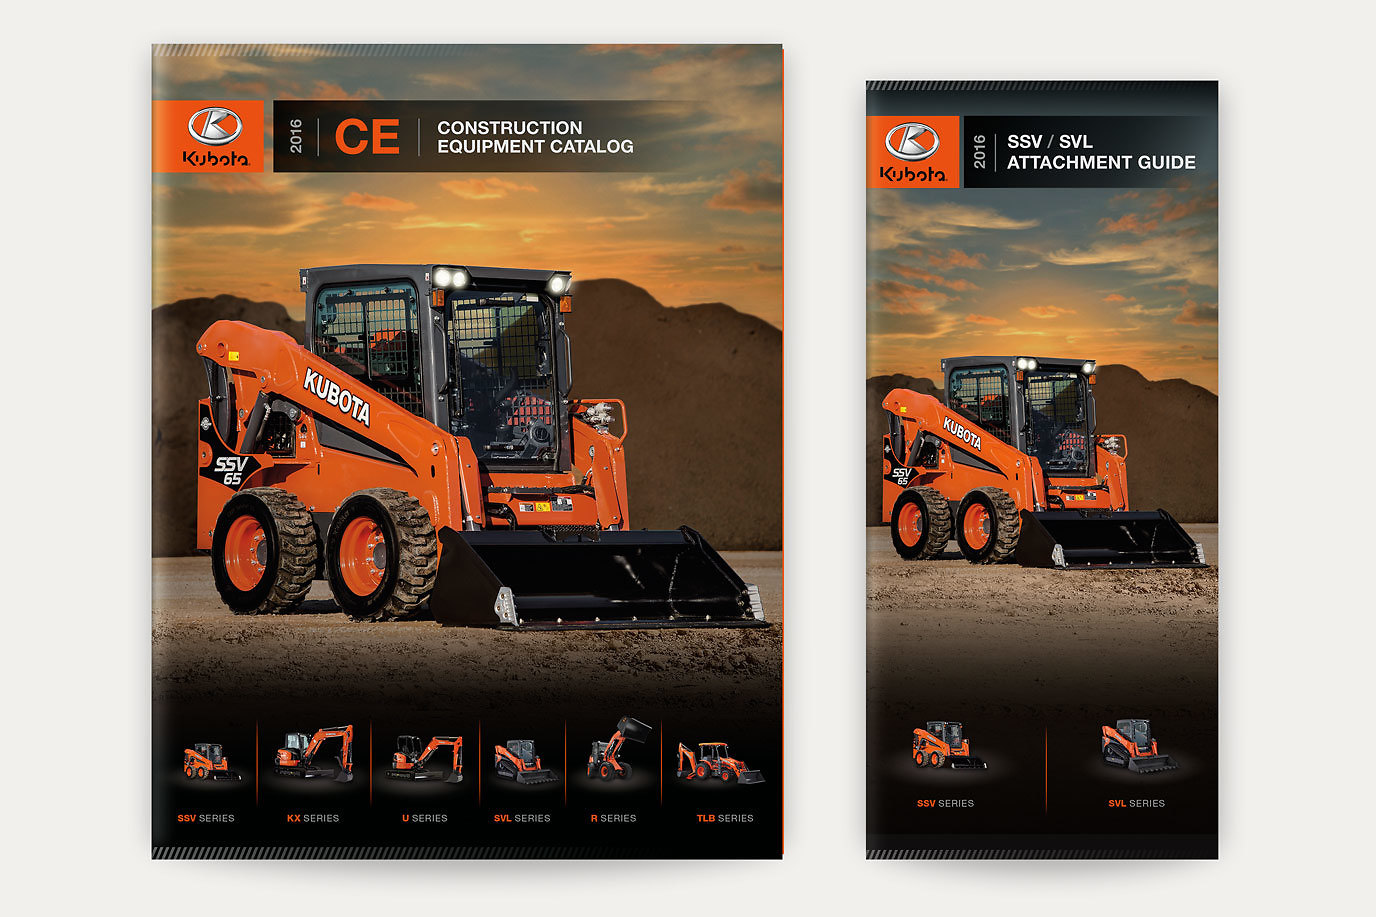 Kubota construction equipment catalogs